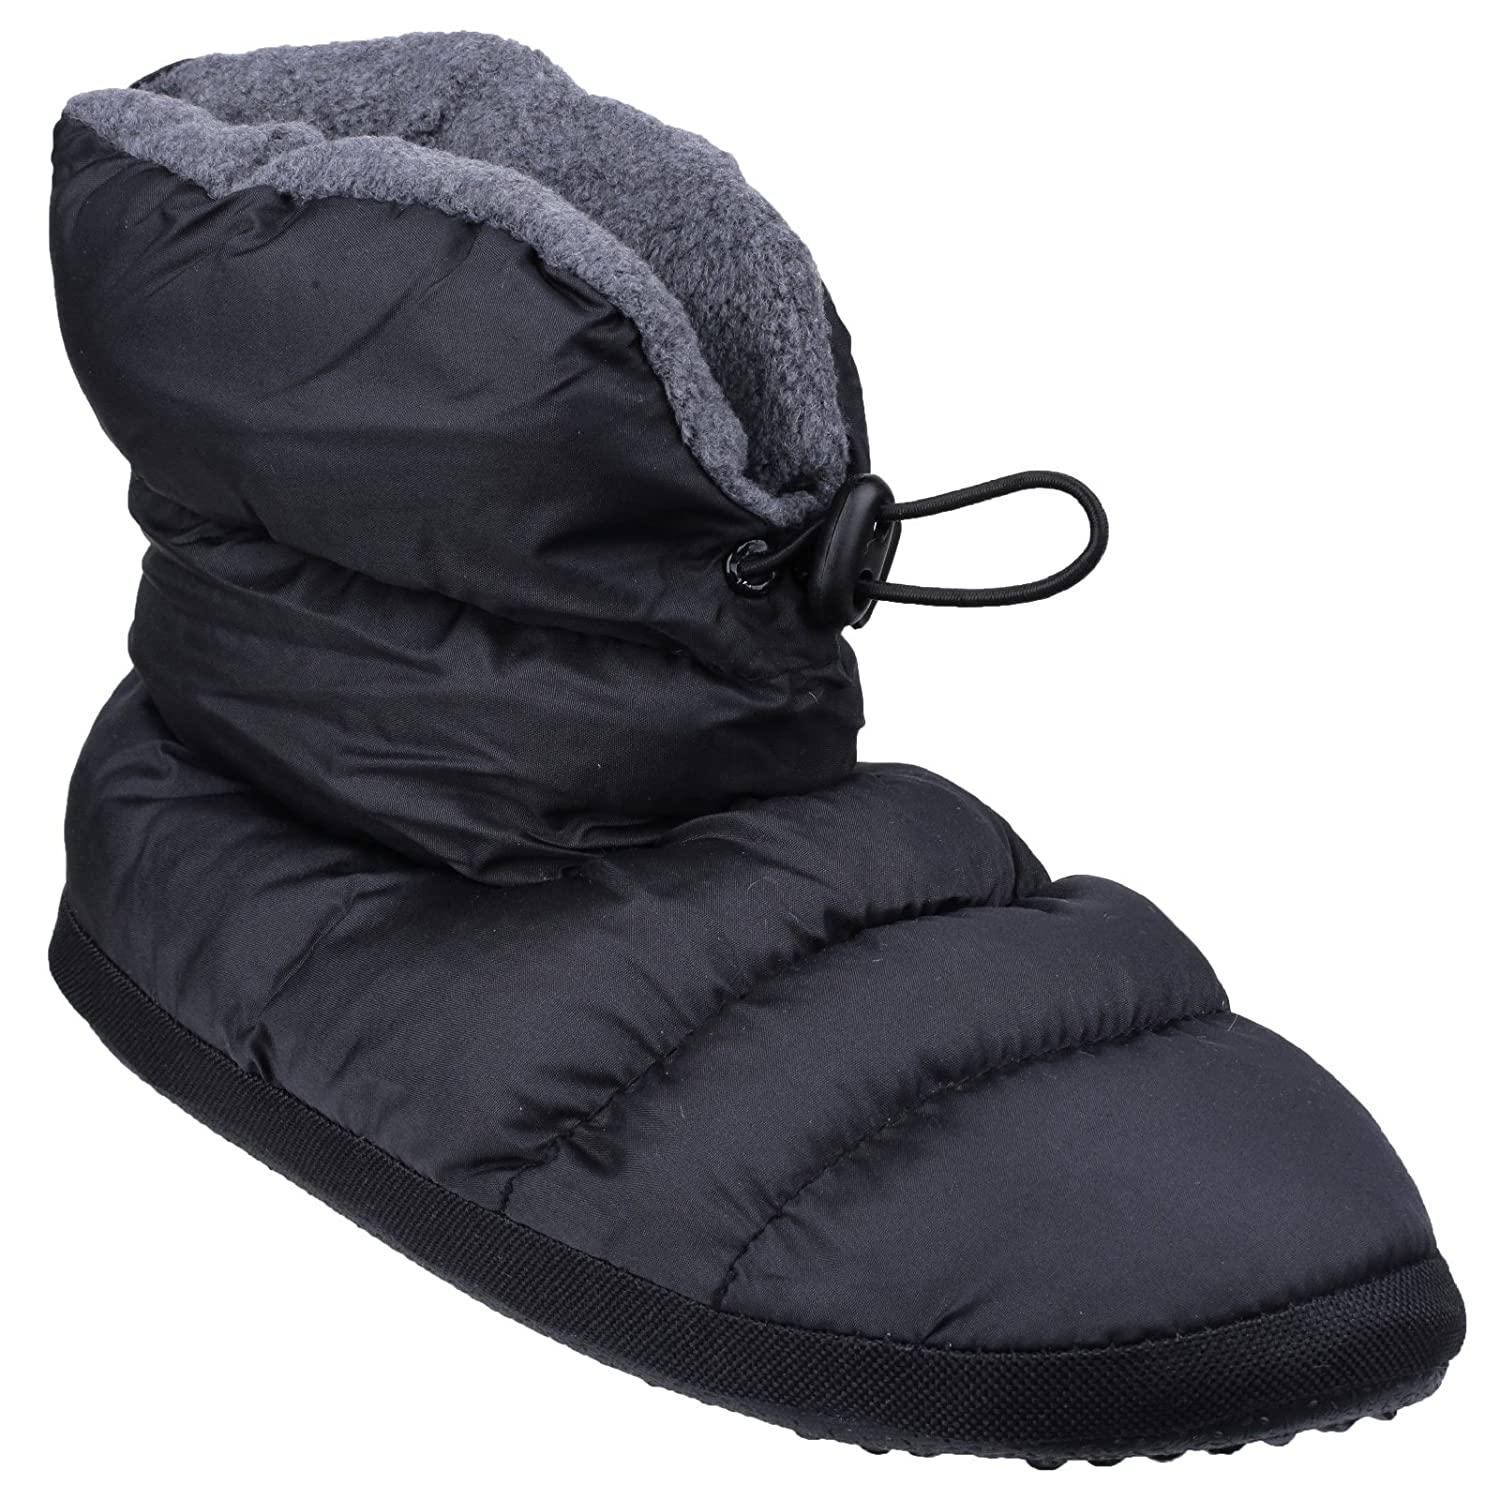 Cotswold - Chaussons Camping - Femme Chaussons bottes - Femme Black 301f0b2 - latesttechnology.space